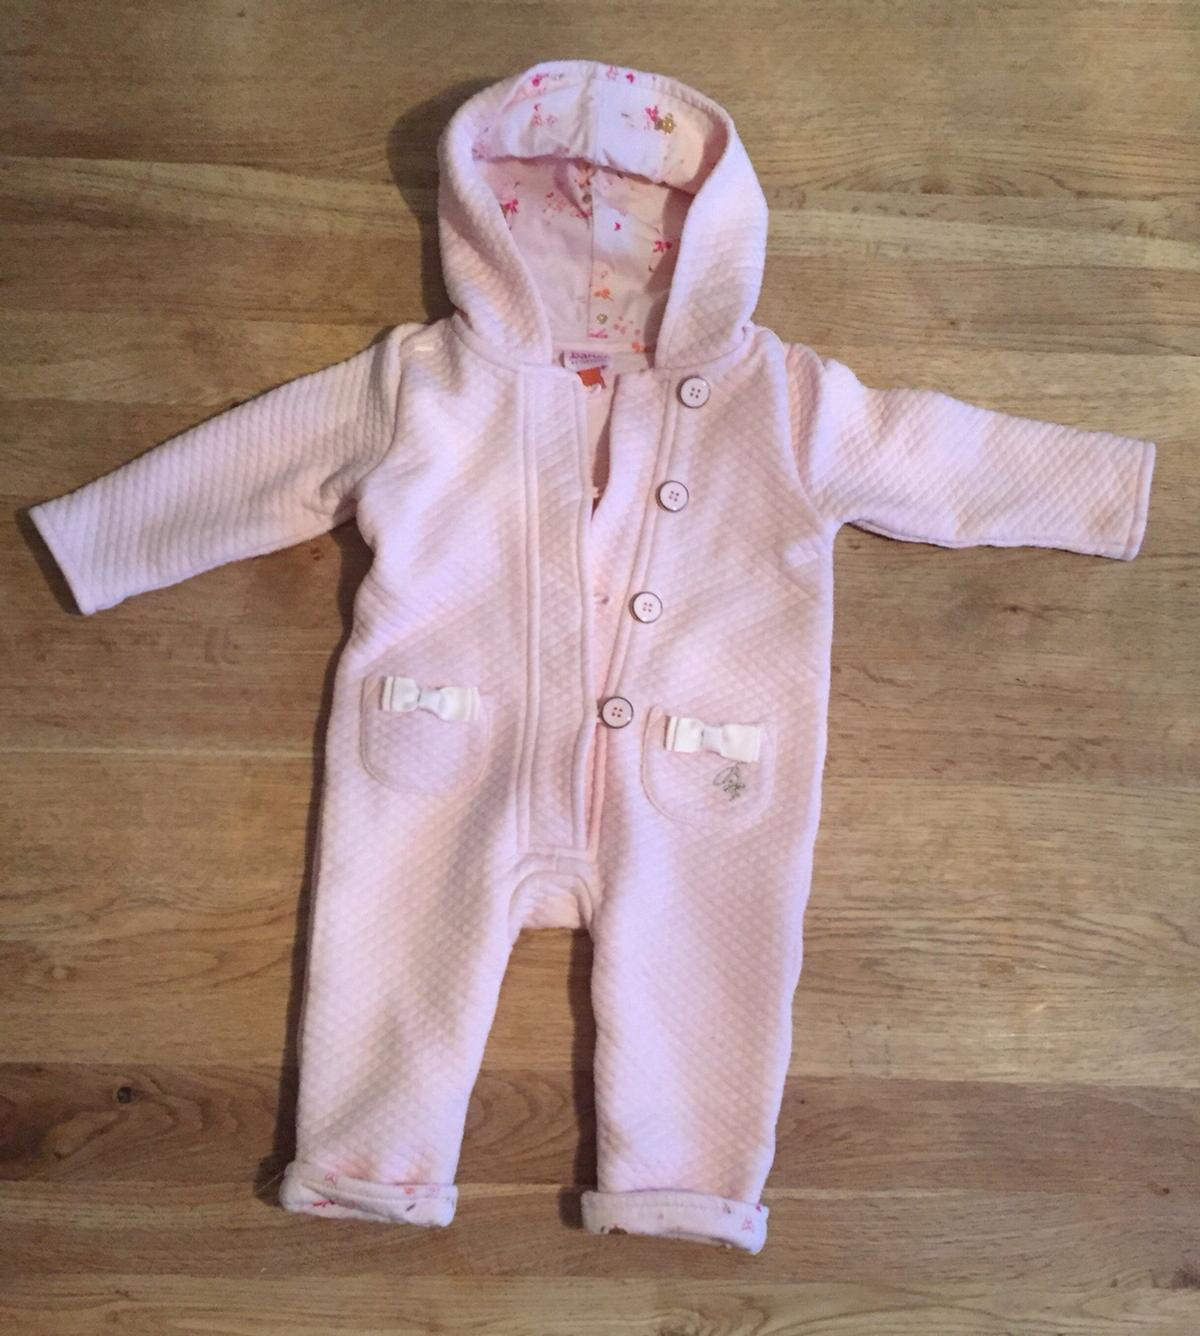 036e6a472b6a0f Description. Lovely girls Pram Suit from Ted Baker Size 6-9 months